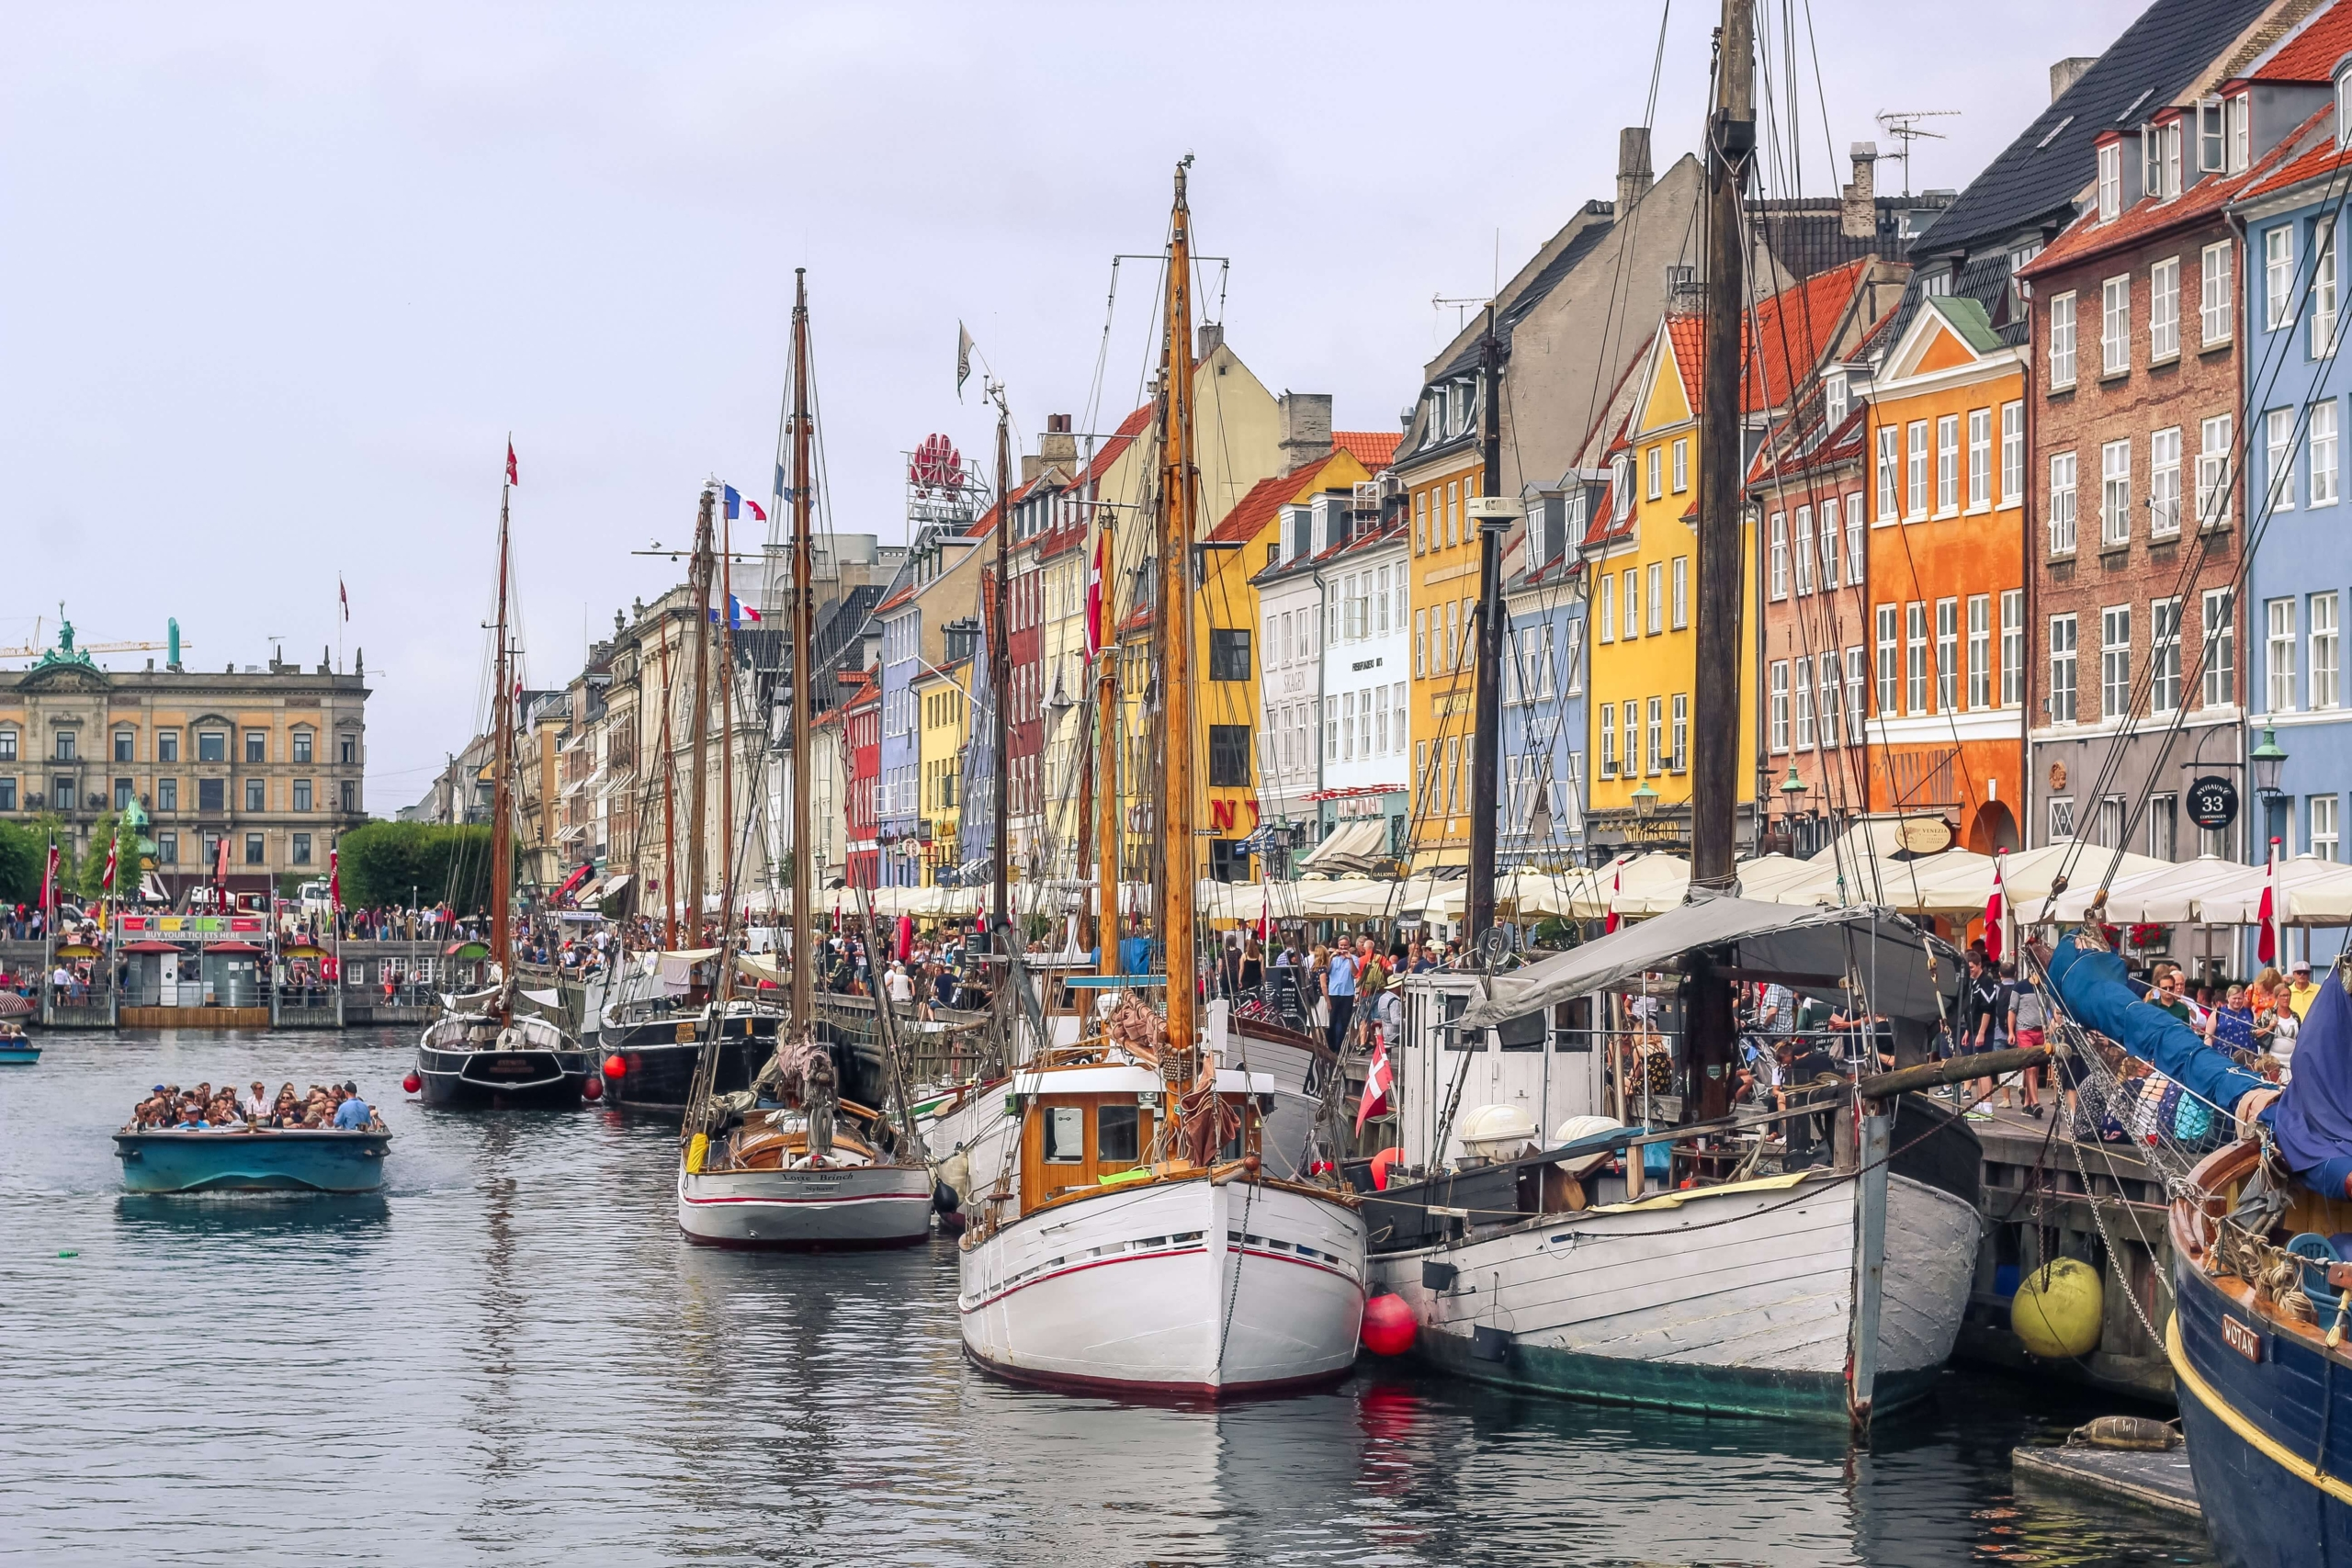 about us image, to show touristic Nyhavn in Copenhagen.